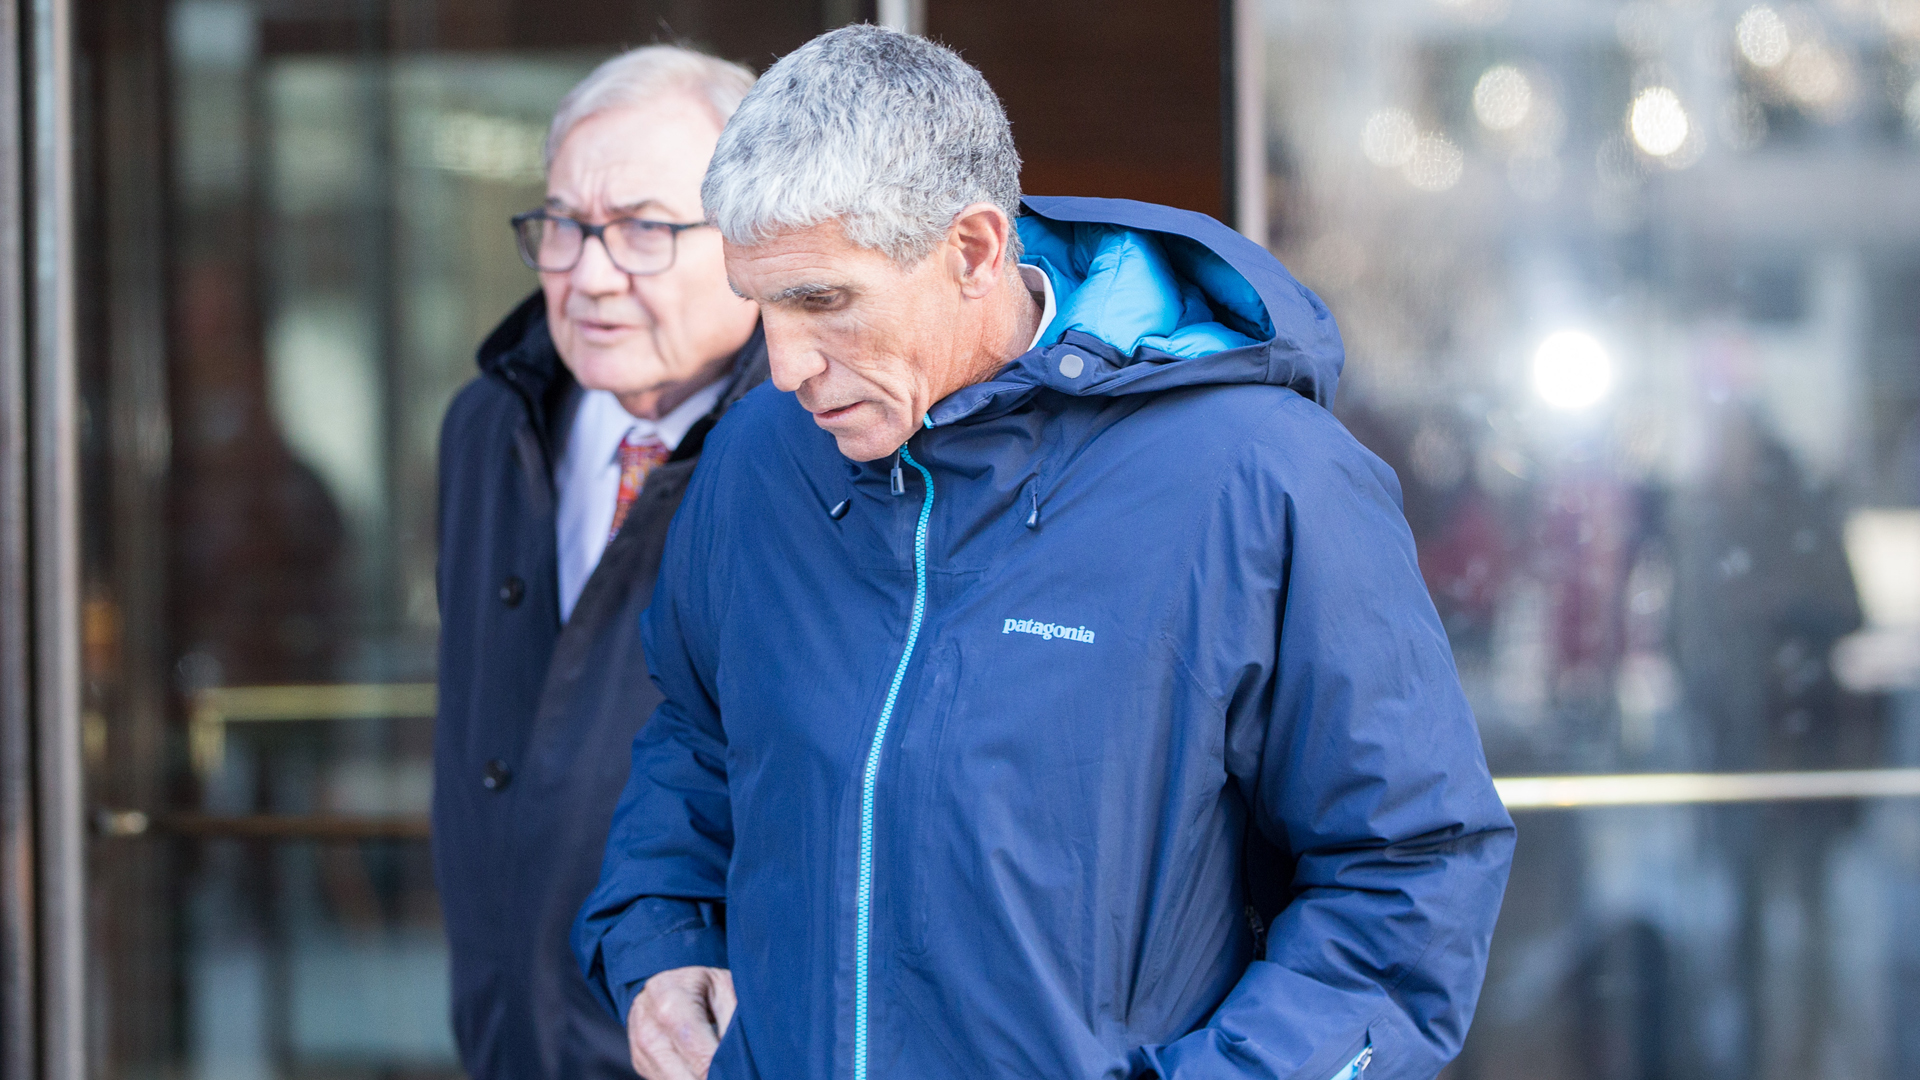 """William """"Rick"""" Singer, the Newport Beach consultant accused of leading the scheme, leaves Boston Federal Court after being charged with racketeering conspiracy, money laundering conspiracy, conspiracy to defraud the United States, and obstruction of justice on March 12, 2019, in Boston. Singer is among several charged in alleged college admissions scam. (Credit: Scott Eisen/Getty Images)"""